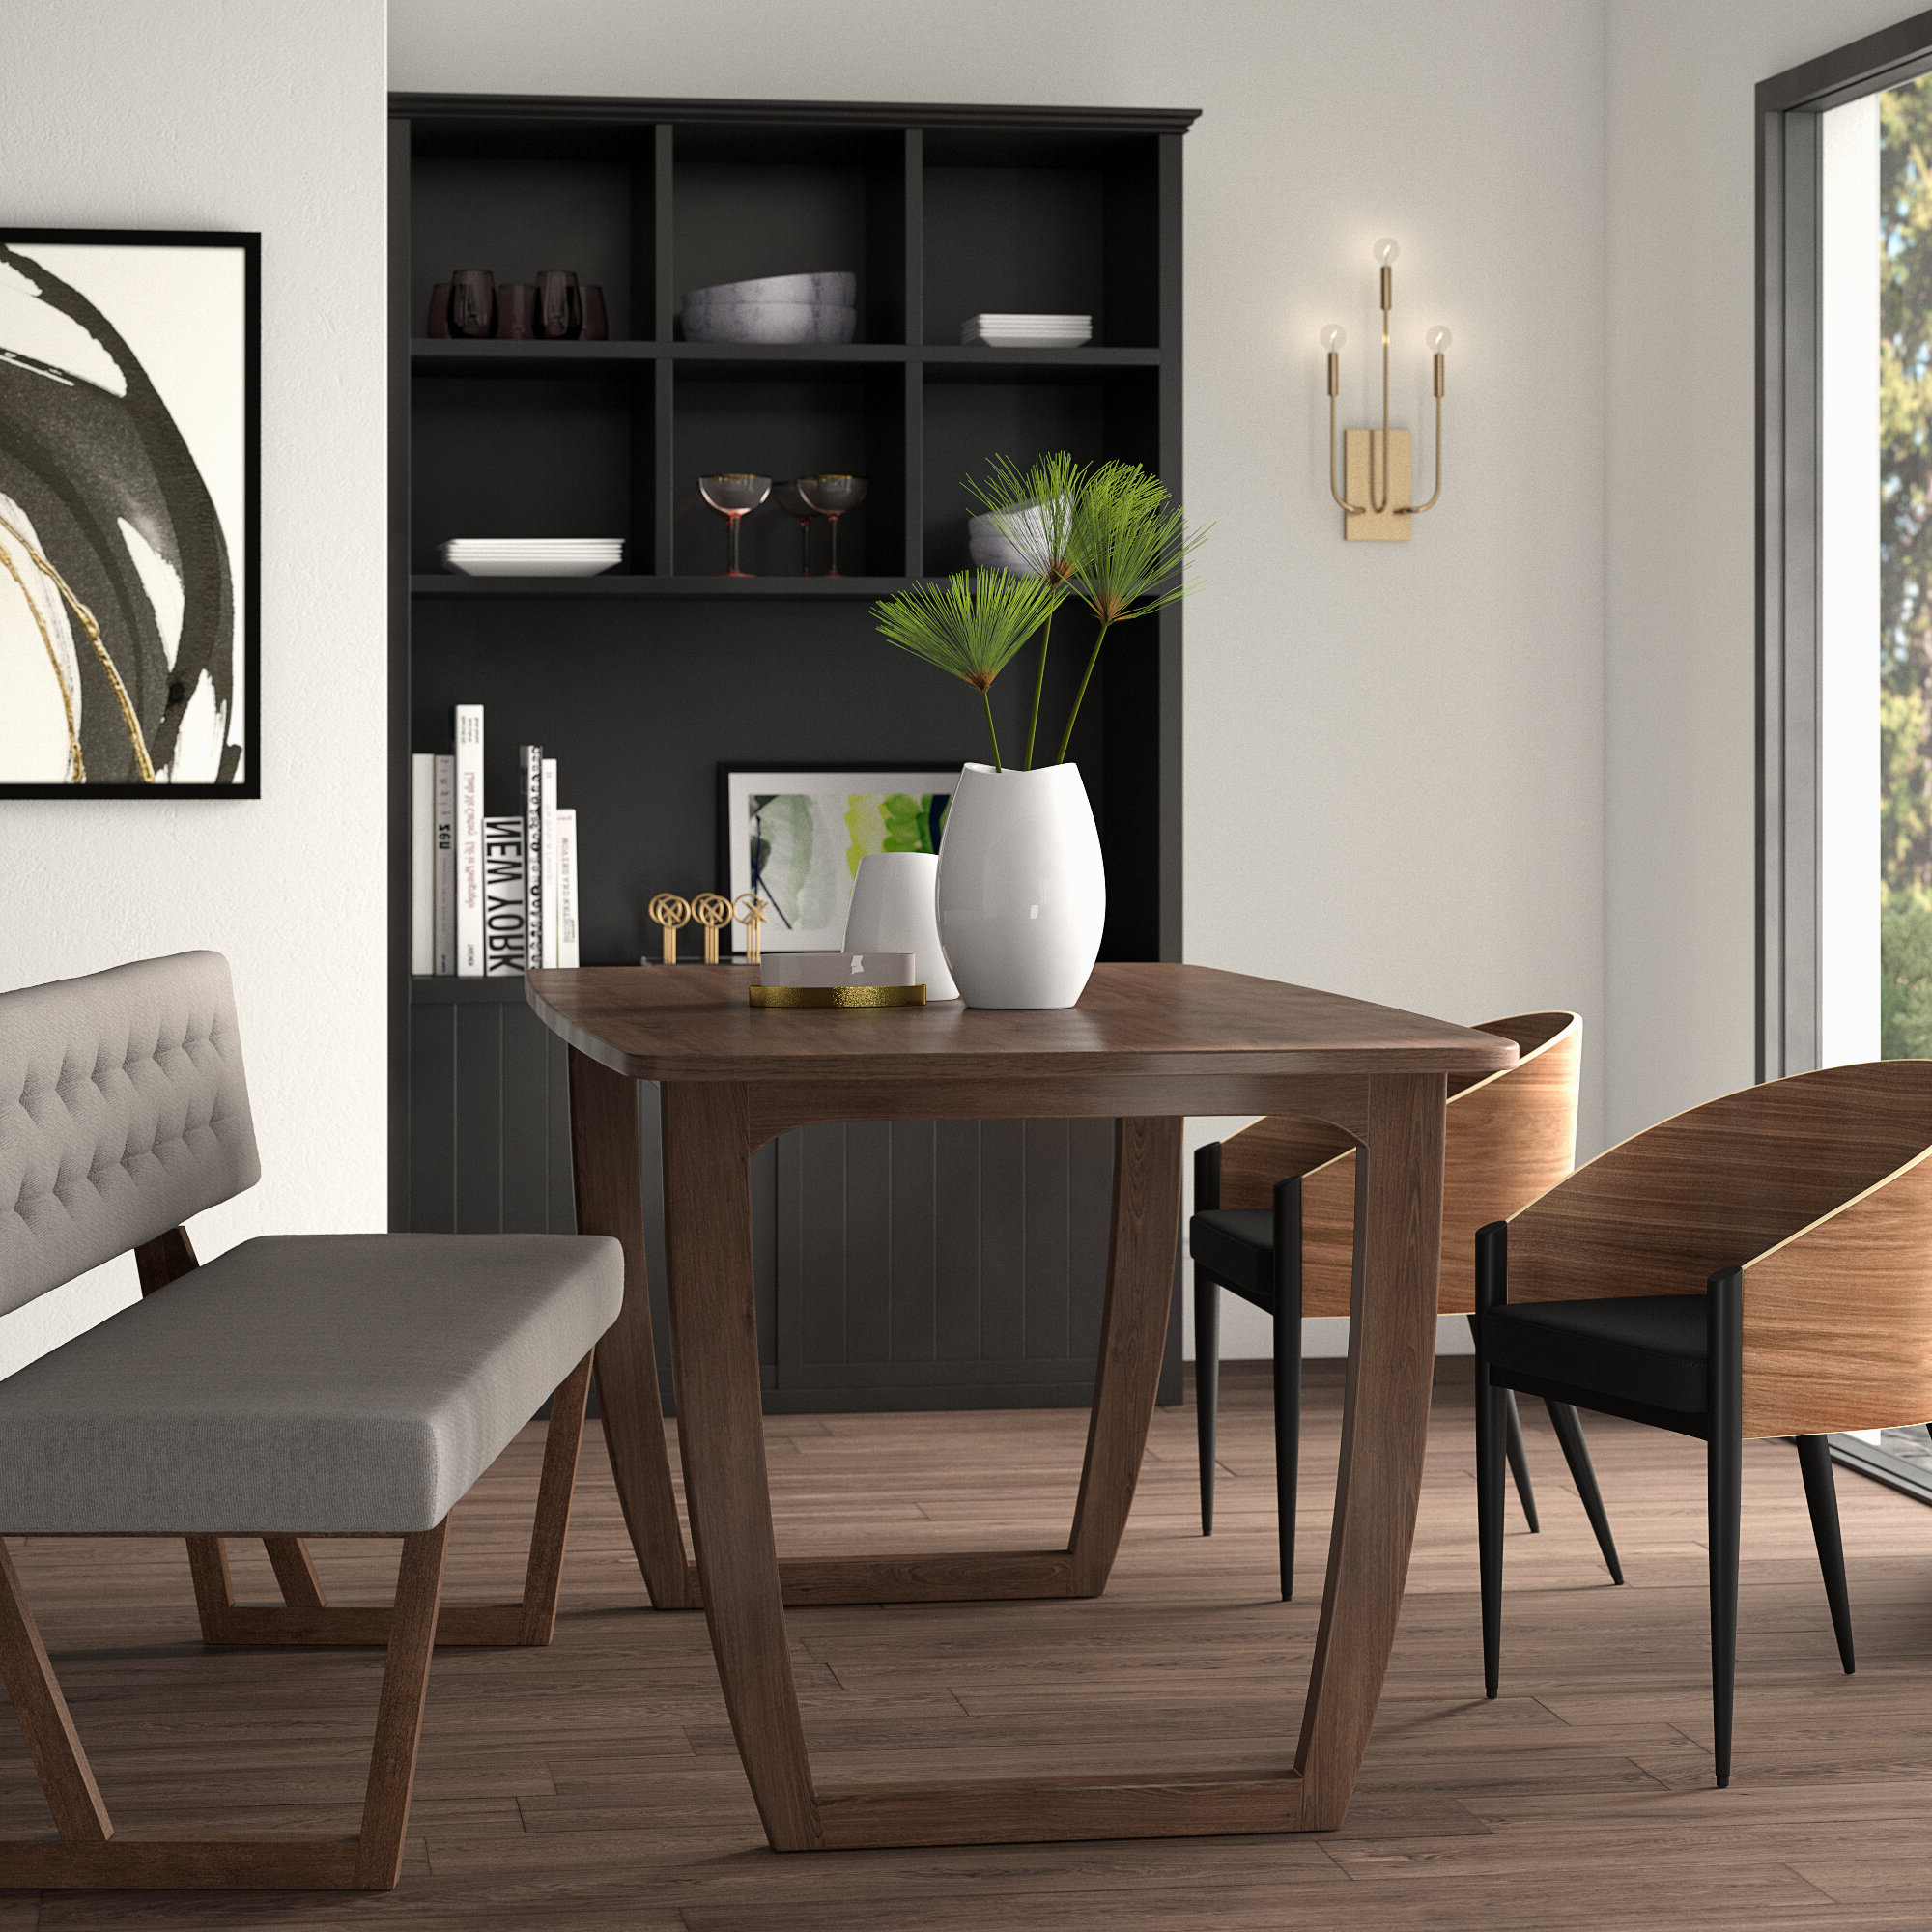 Wayfair Throughout Mukai 5 Piece Dining Sets (View 19 of 25)